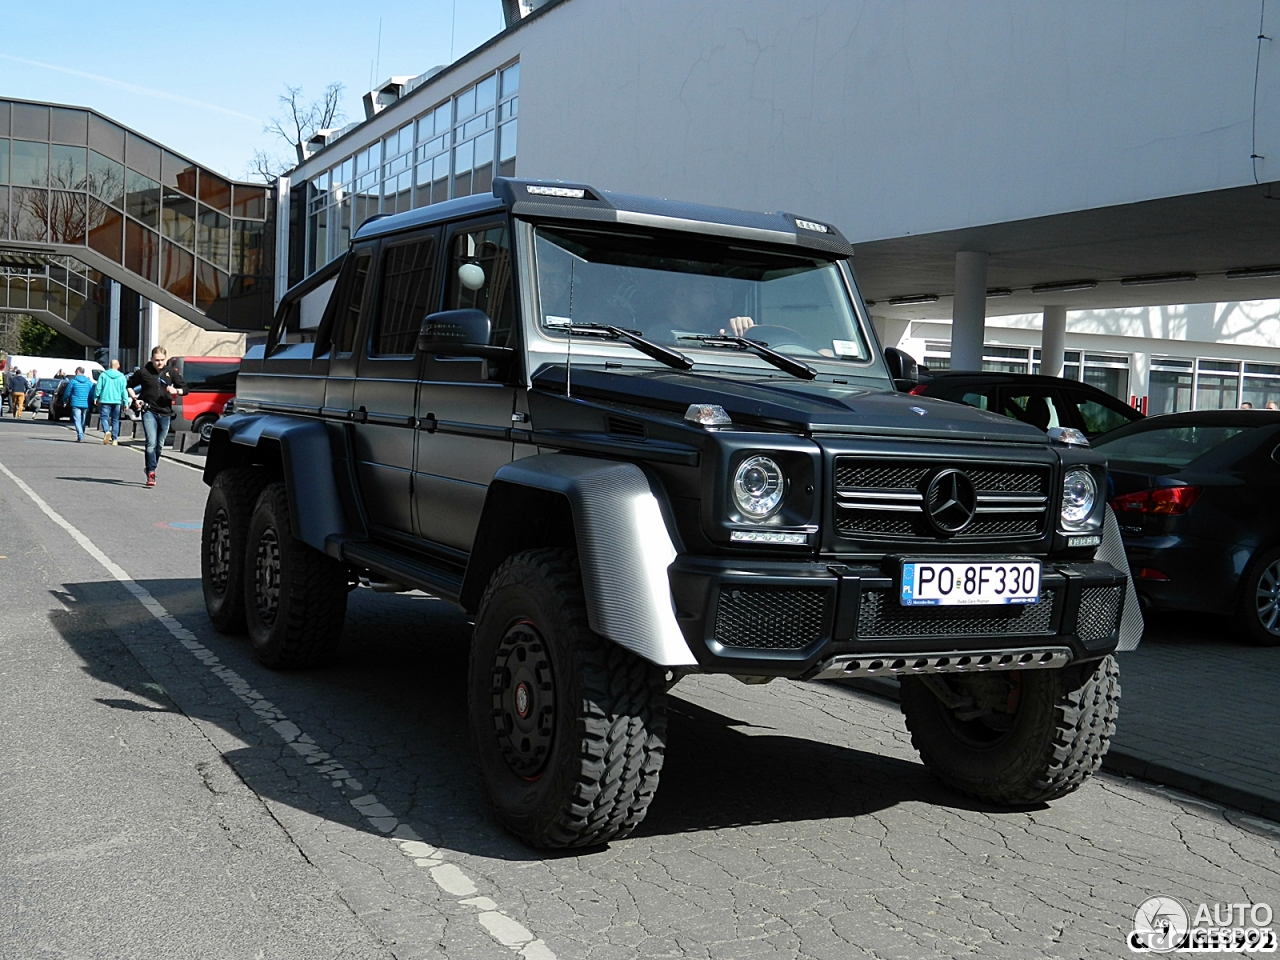 Mercedes benz g 63 amg 6x6 8 may 2016 autogespot for Mercedes benz amg 6x6 price